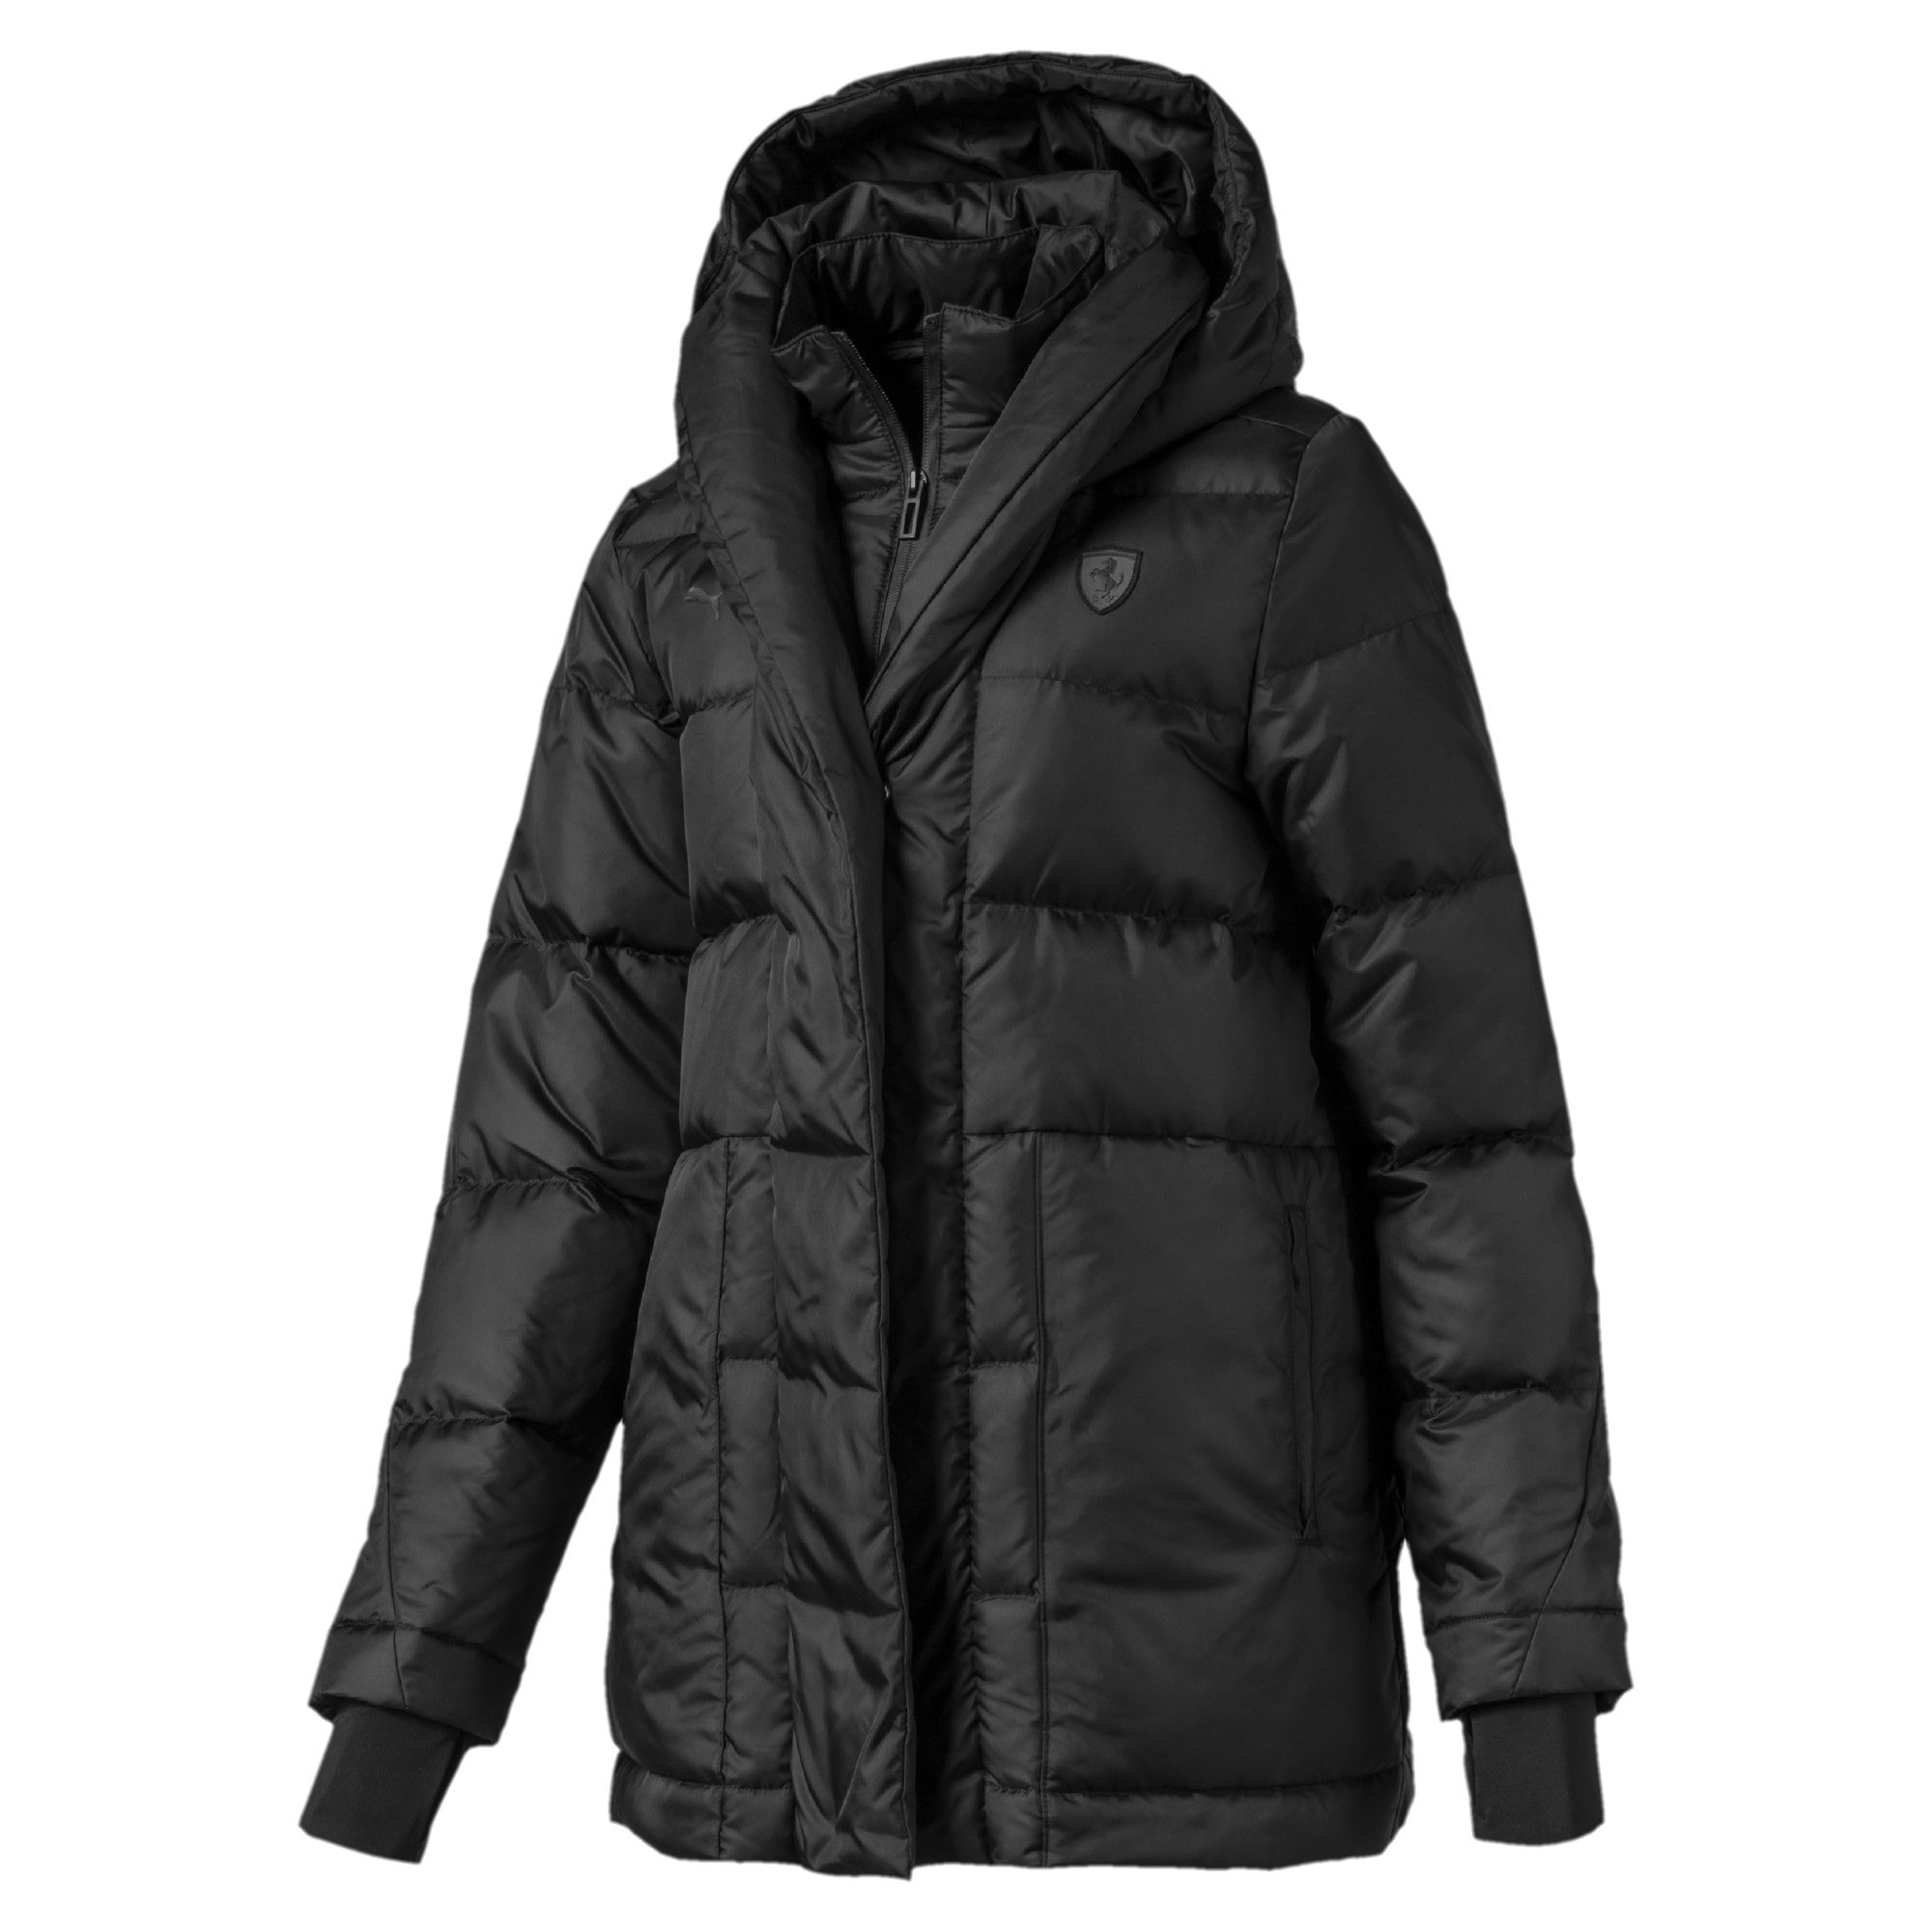 Thumbnail 1 of Scuderia Ferrari Women's Down Jacket, Puma Black, medium